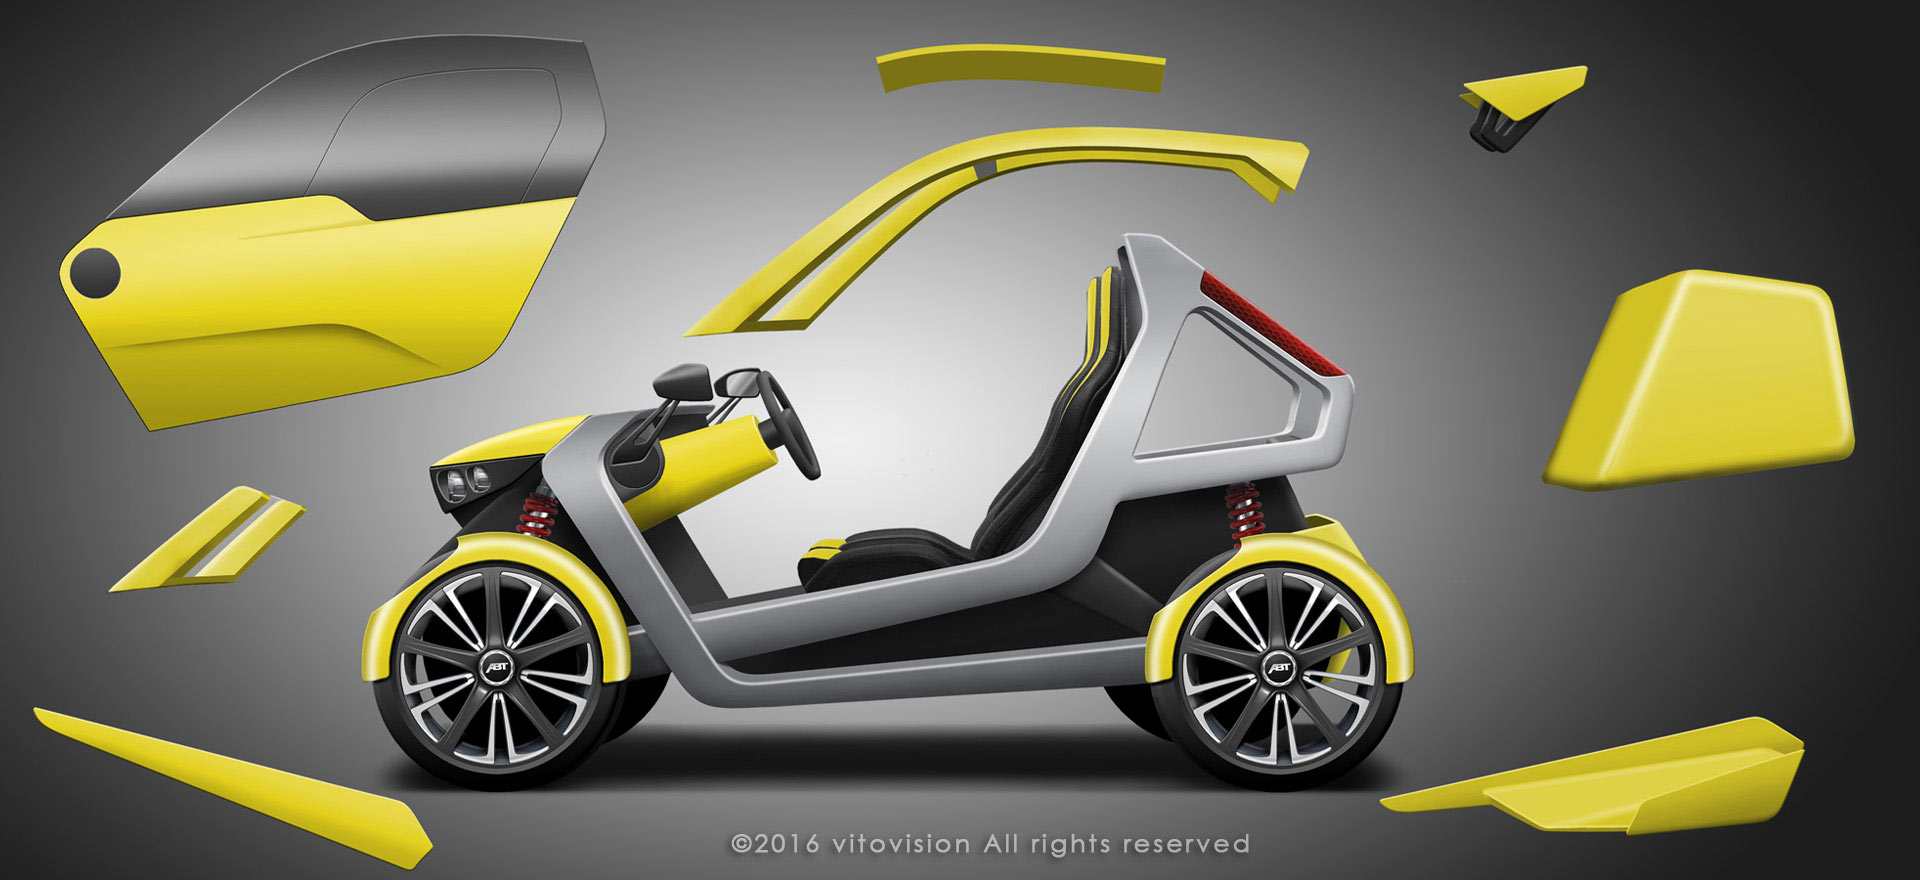 Design concept for automotive emobility